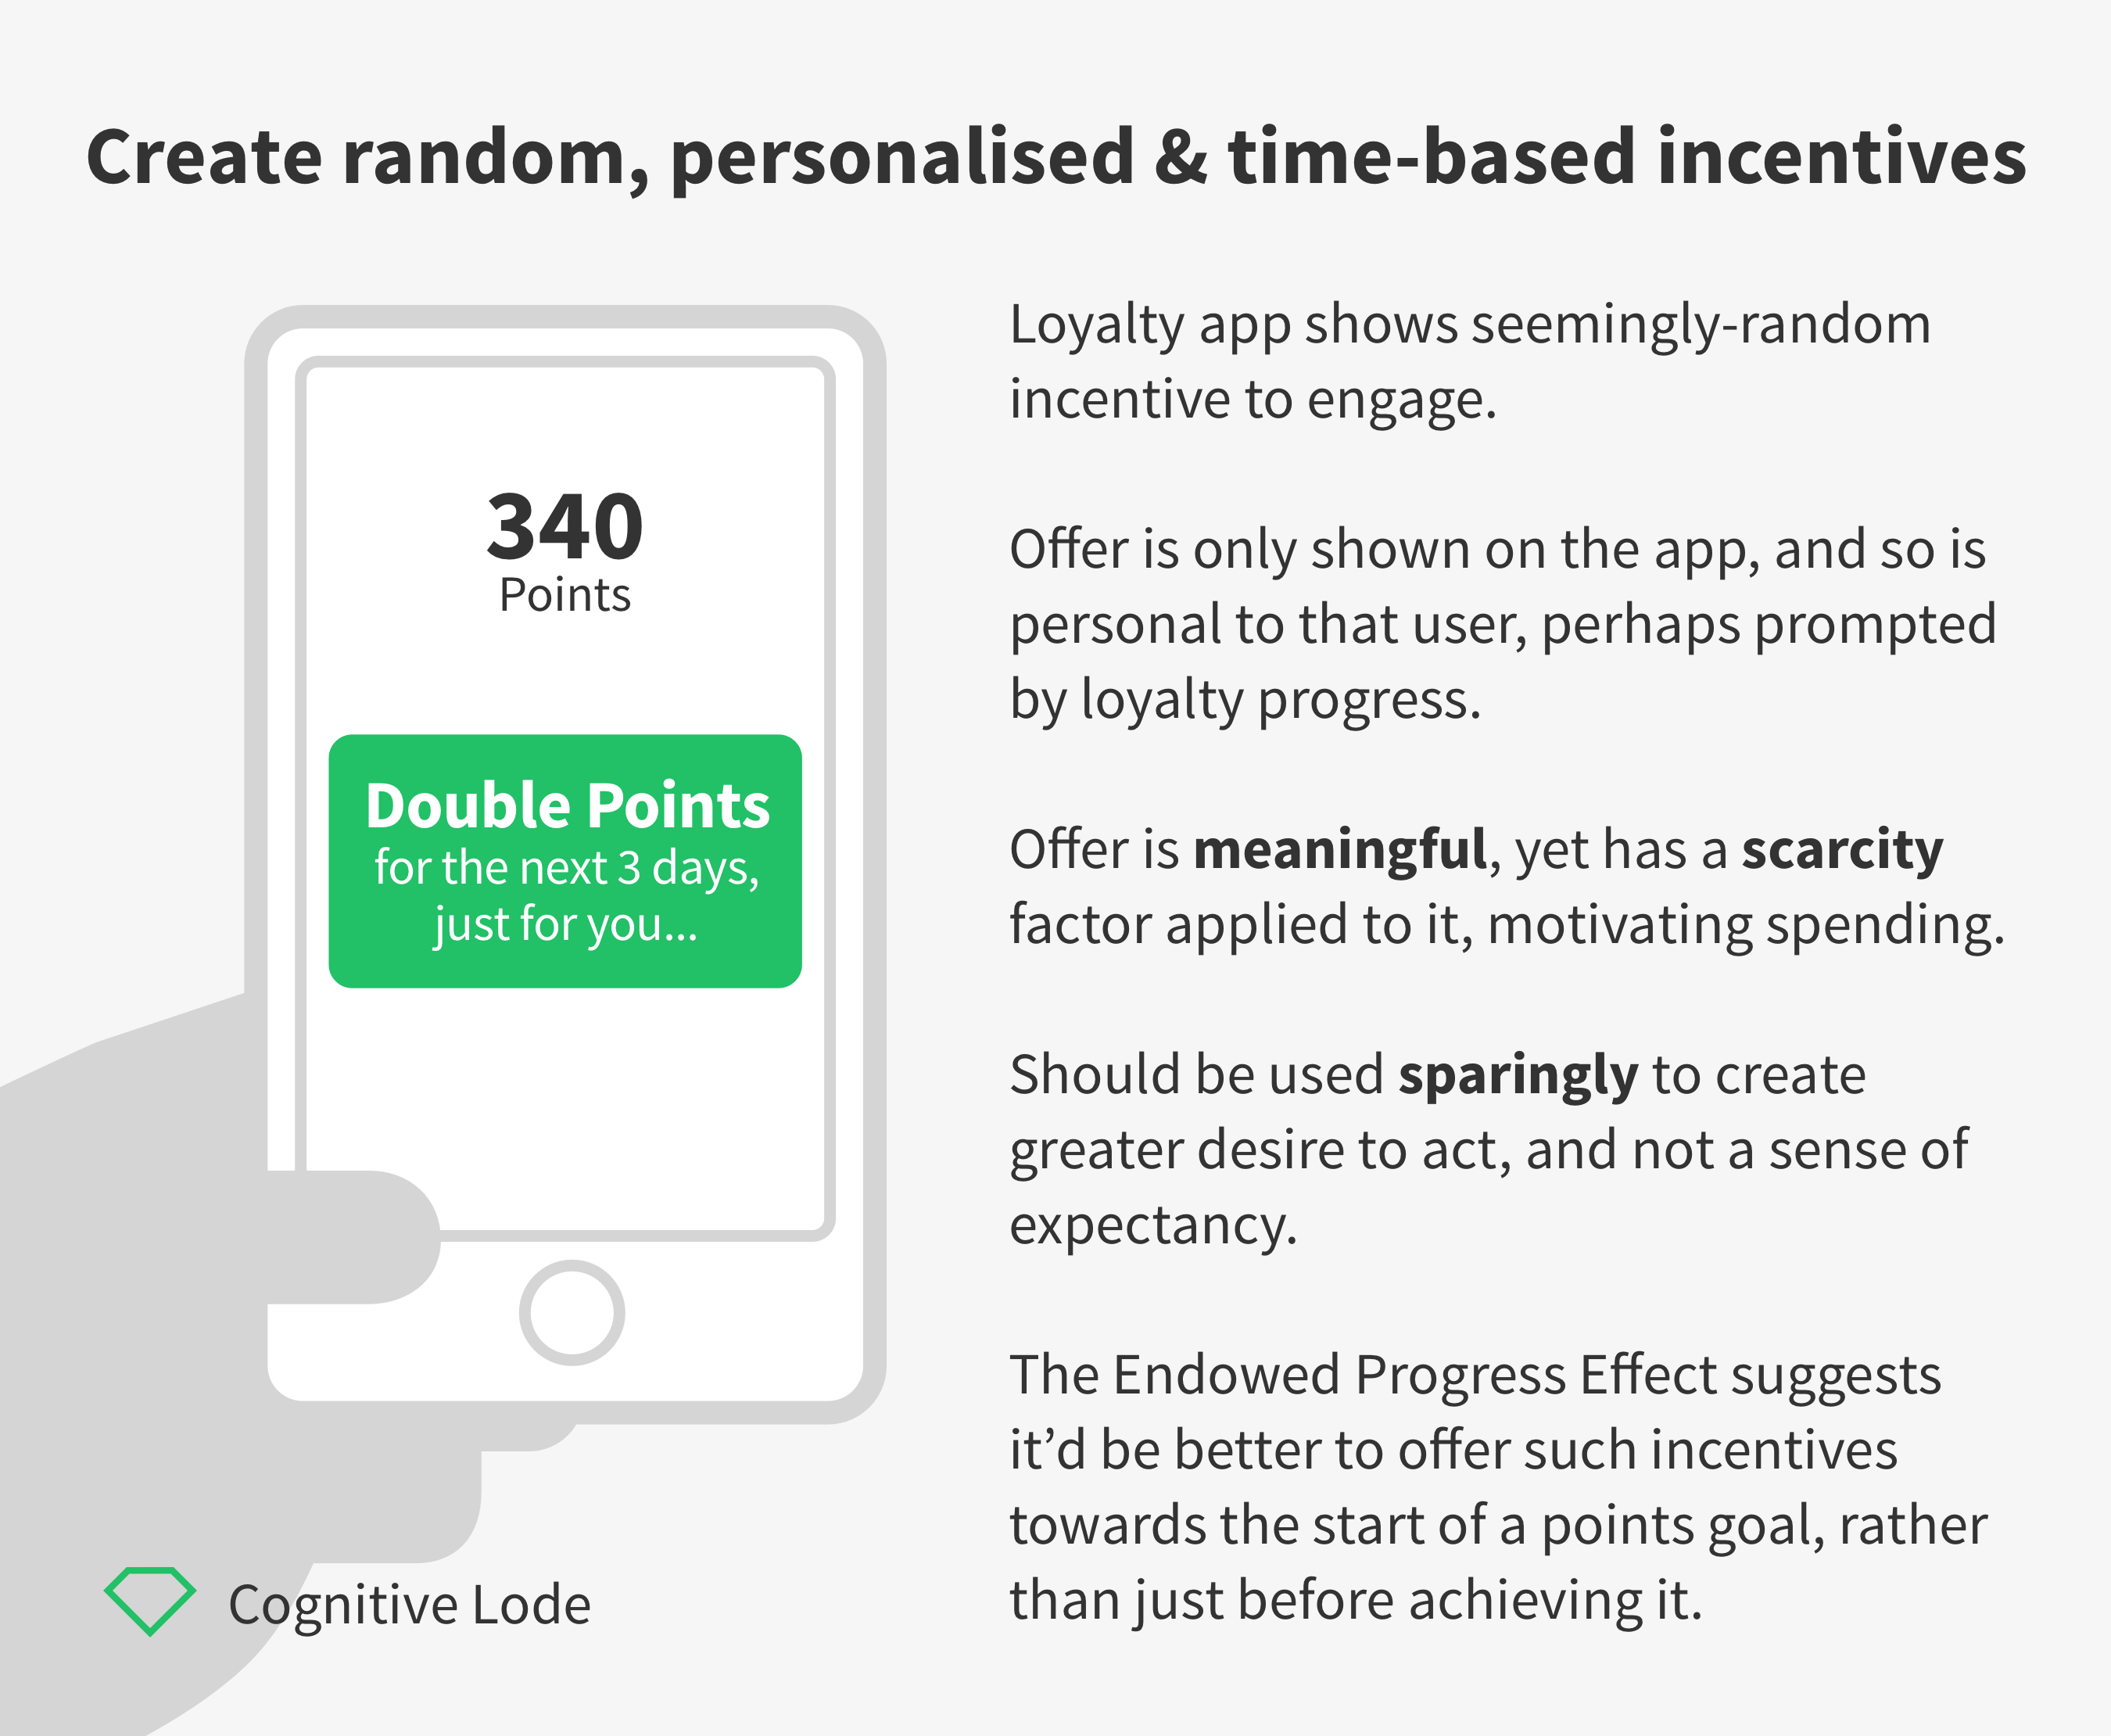 Cookie Clicker - Create random, personalised & time-based incentives